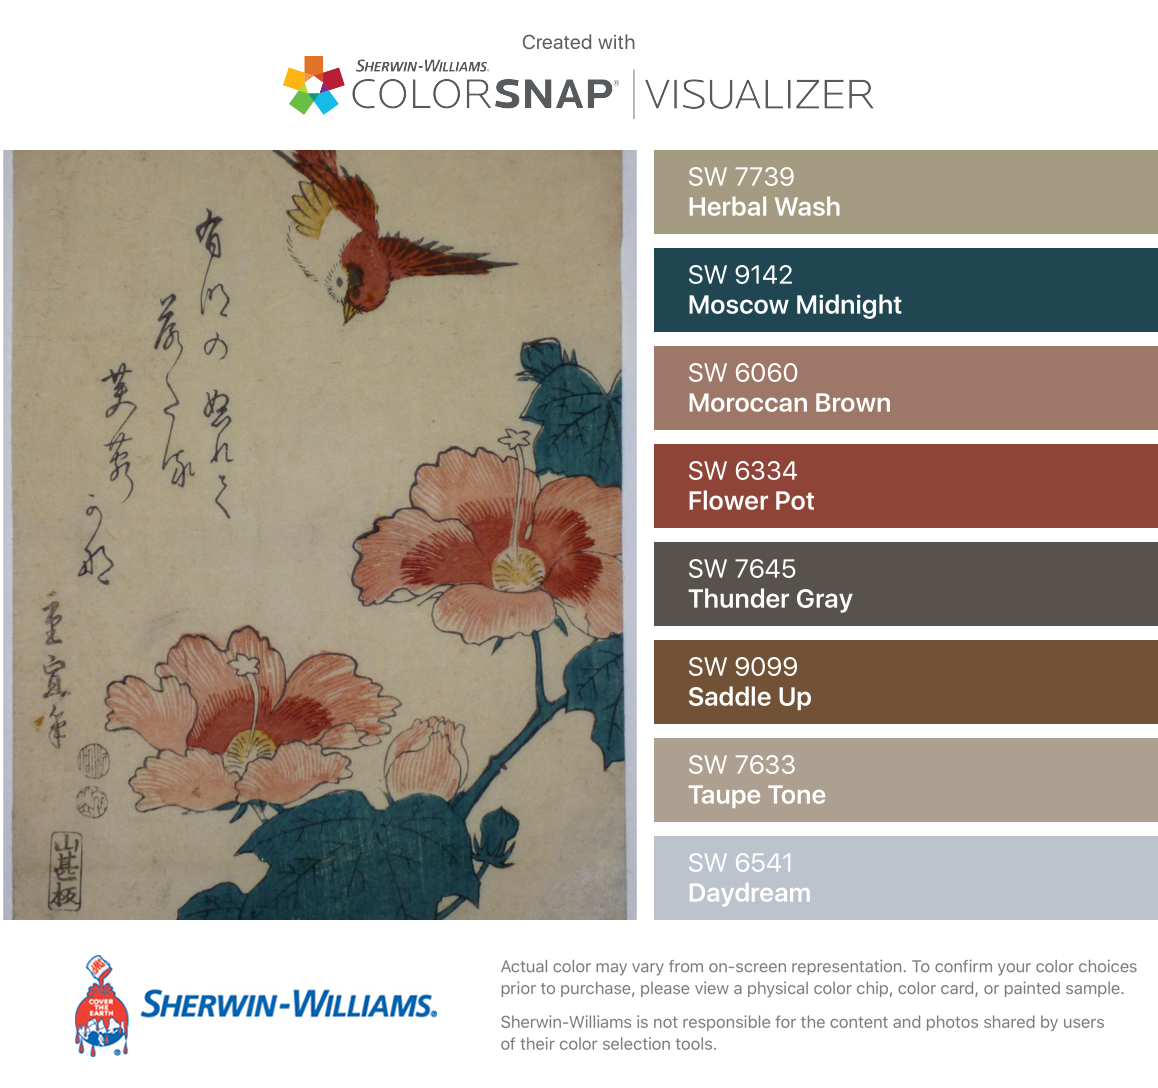 I found these colors with ColorSnap® Visualizer for iPhone by Sherwin-Williams: Herbal Wash (SW 7739), Moscow Midnight (SW 9142), Moroccan Brown (SW 6060), Flower Pot (SW 6334), Thunder Gray (SW 7645), Saddle Up (SW 9099), Taupe Tone (SW 7633), Daydream (SW 6541). #cityloftsherwinwilliams